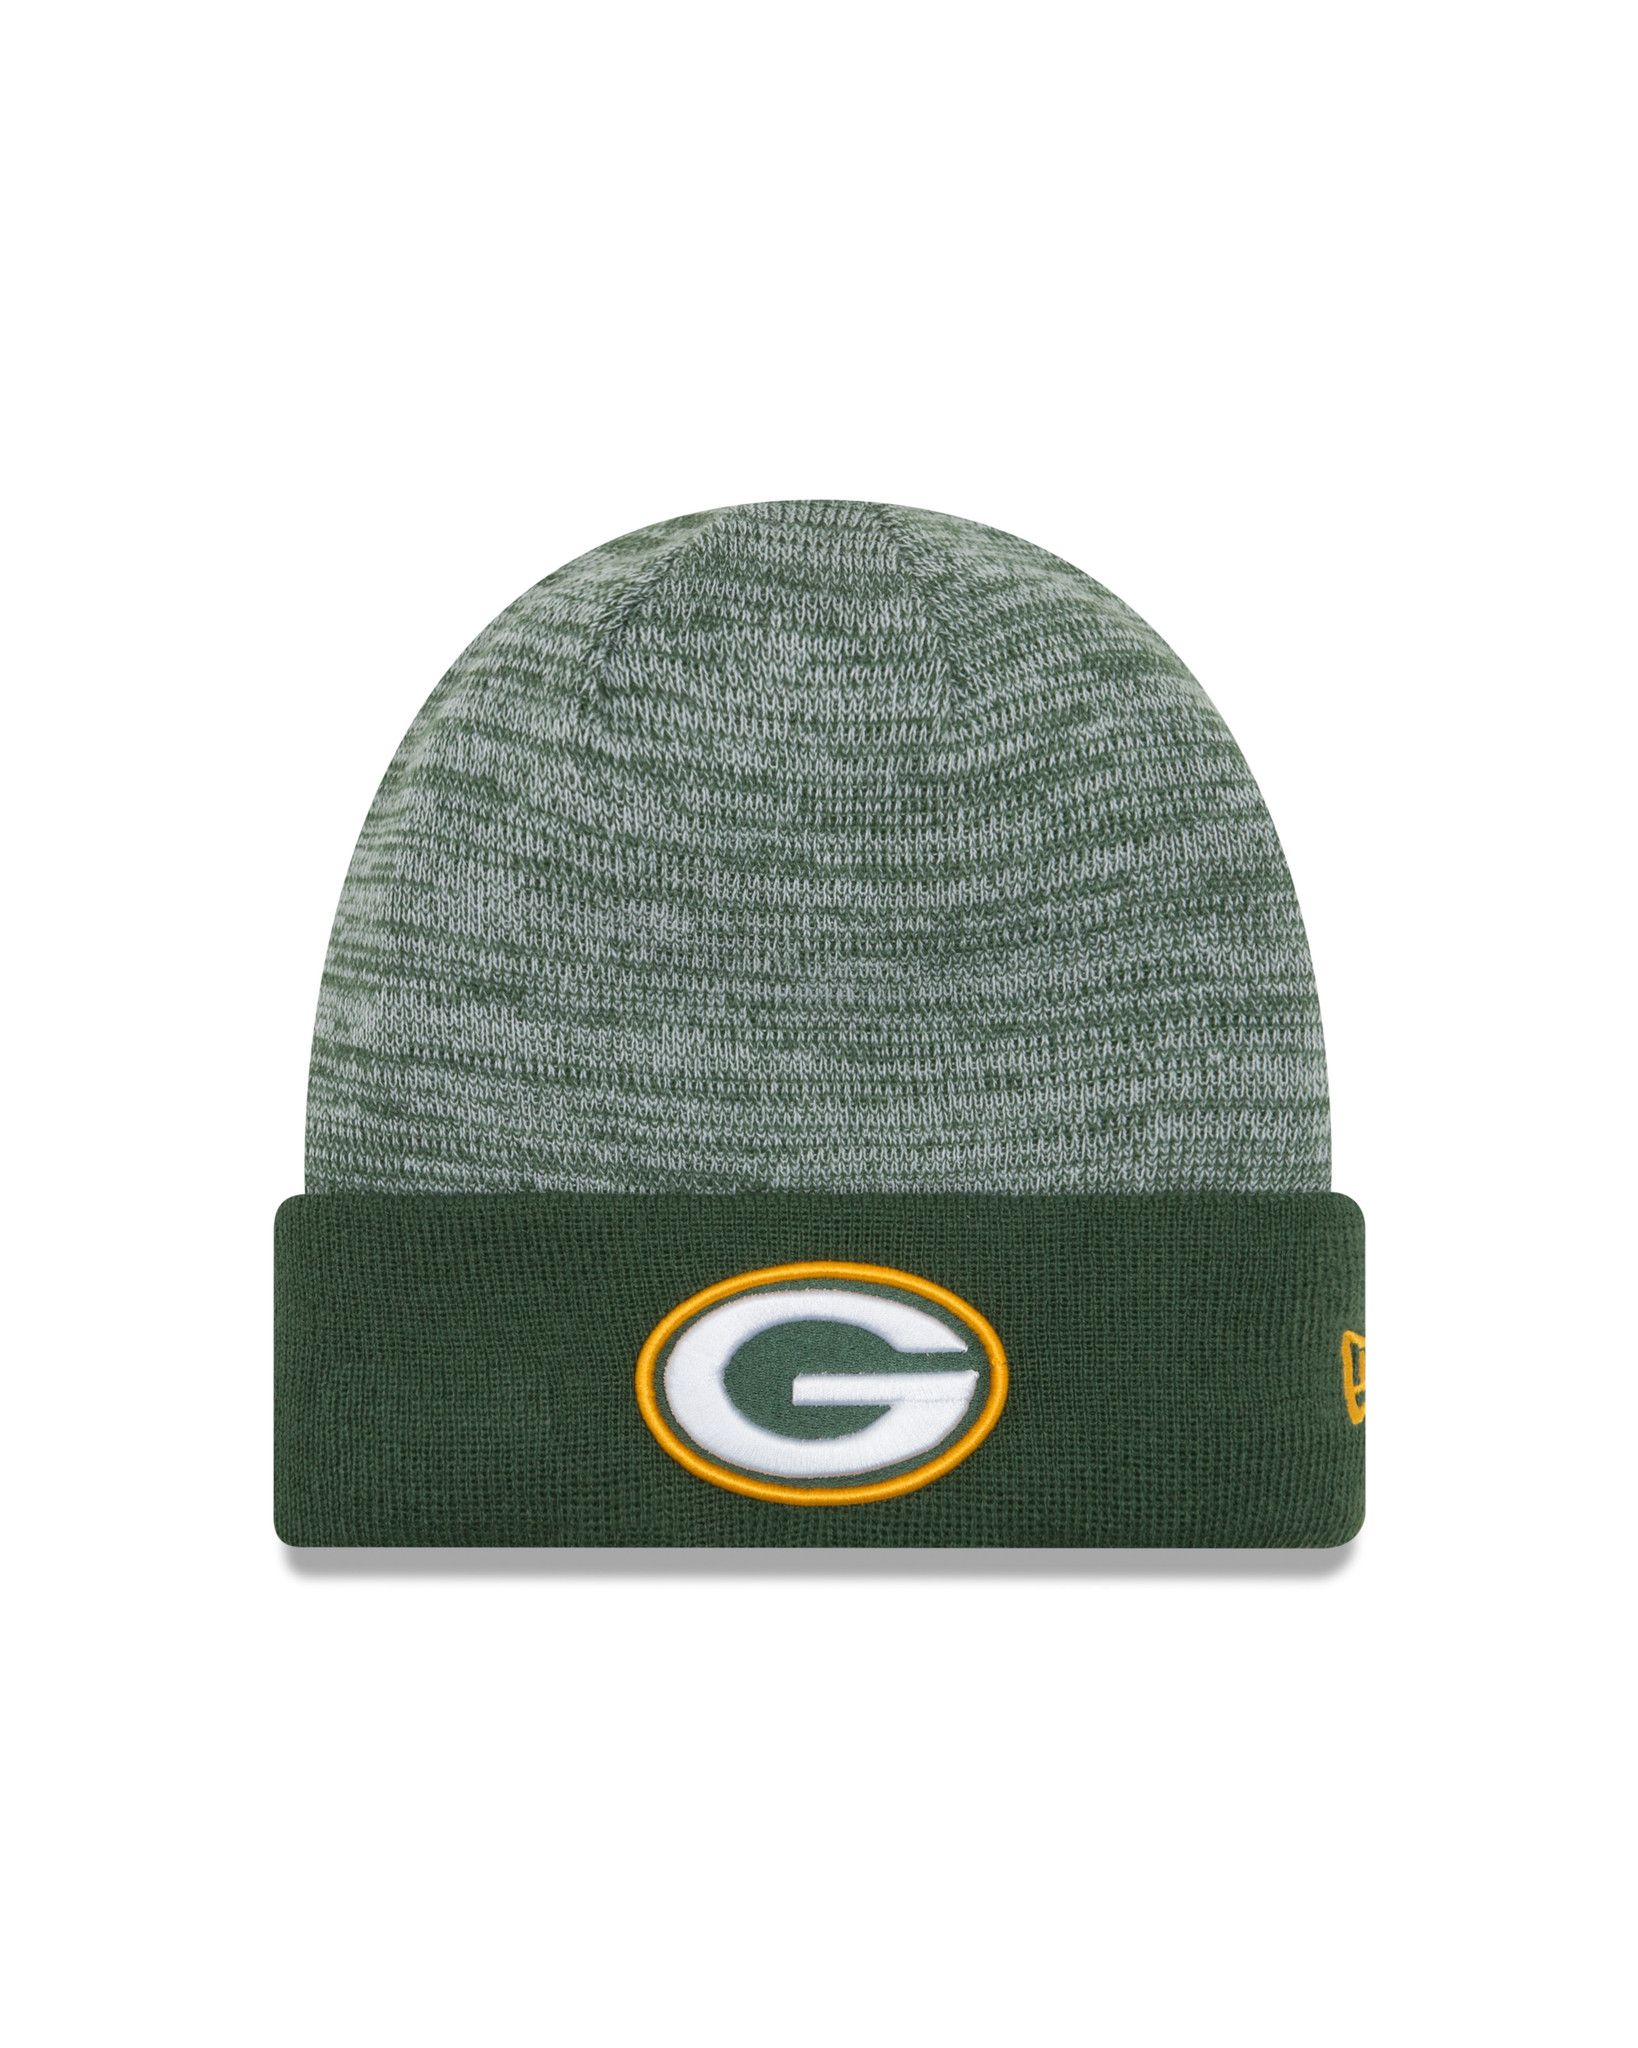 56617d9f This acrylic/polyester/wool blend hat features a quality embroidered team  logo on the cuff with team colors. One size fits most. #greenbay #packers # nfl